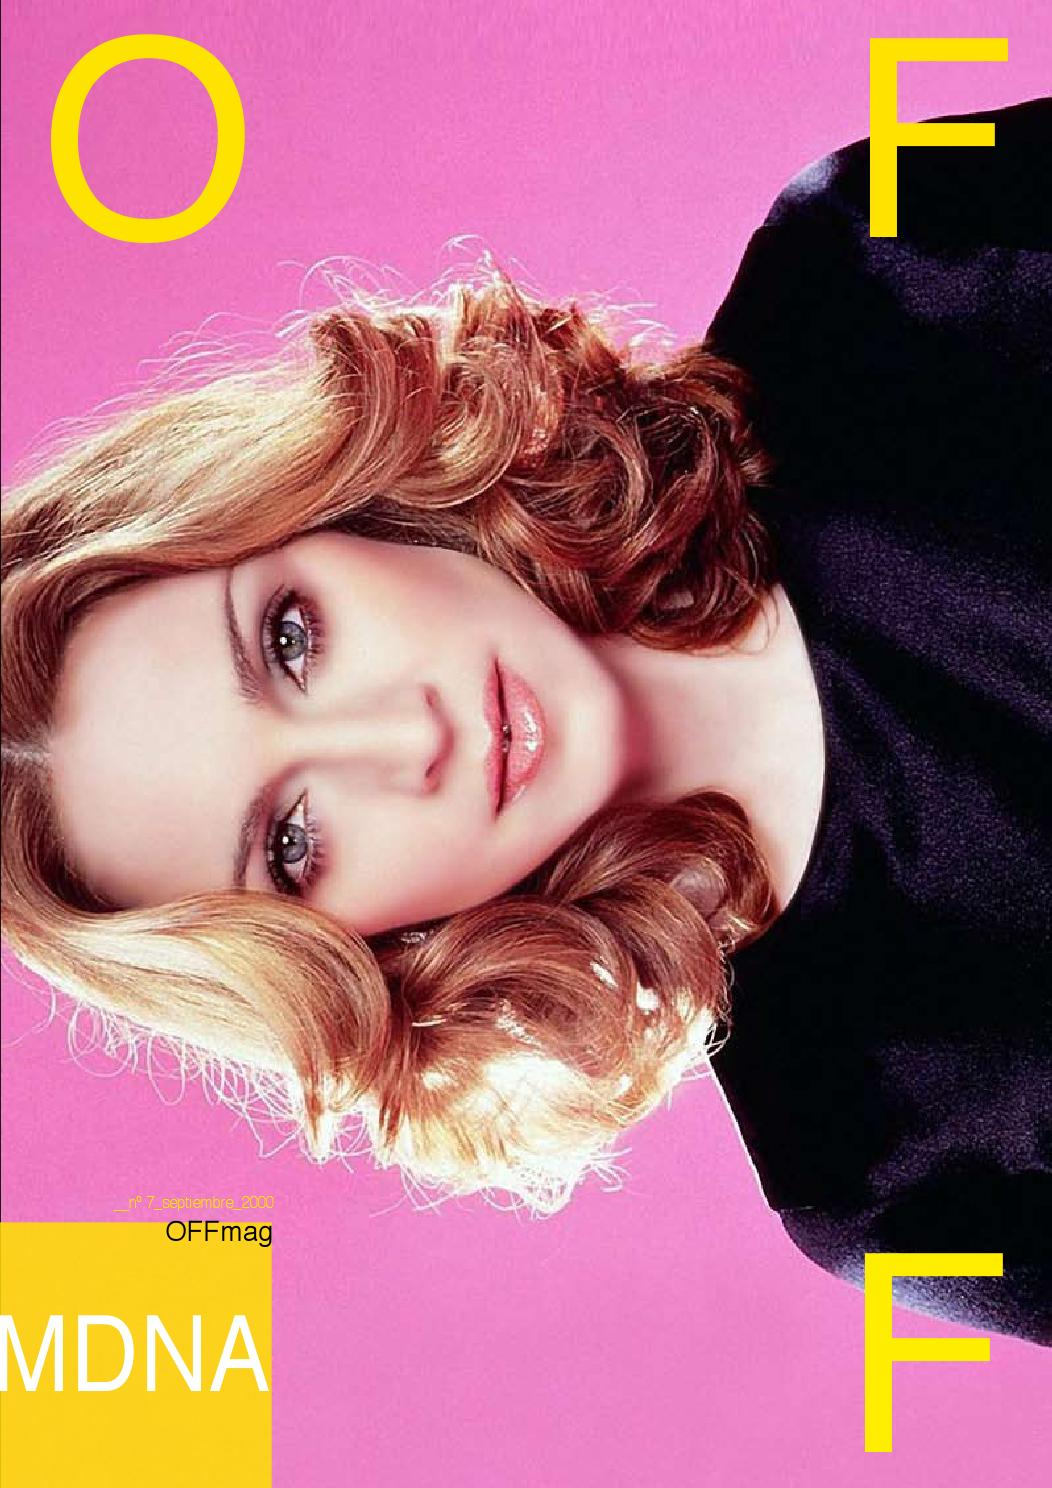 OFFmag_issue_7_Madonna by OFF mag - issuu